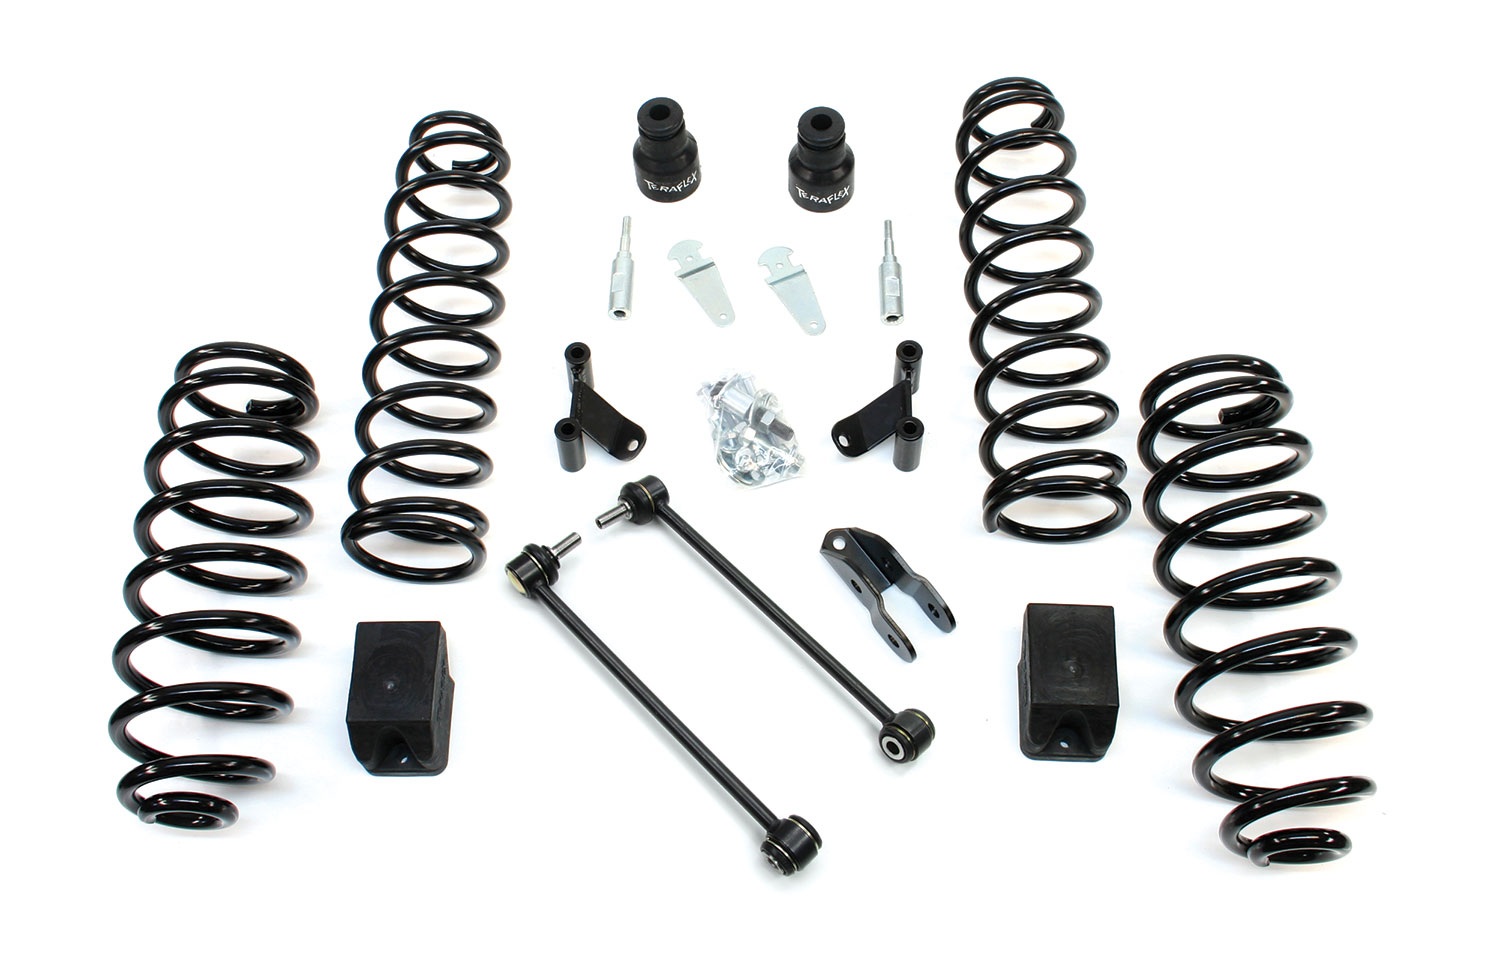 Teraflex Suspension 2.5in Lift Kit, w/Shock Extensions - JK 2DR